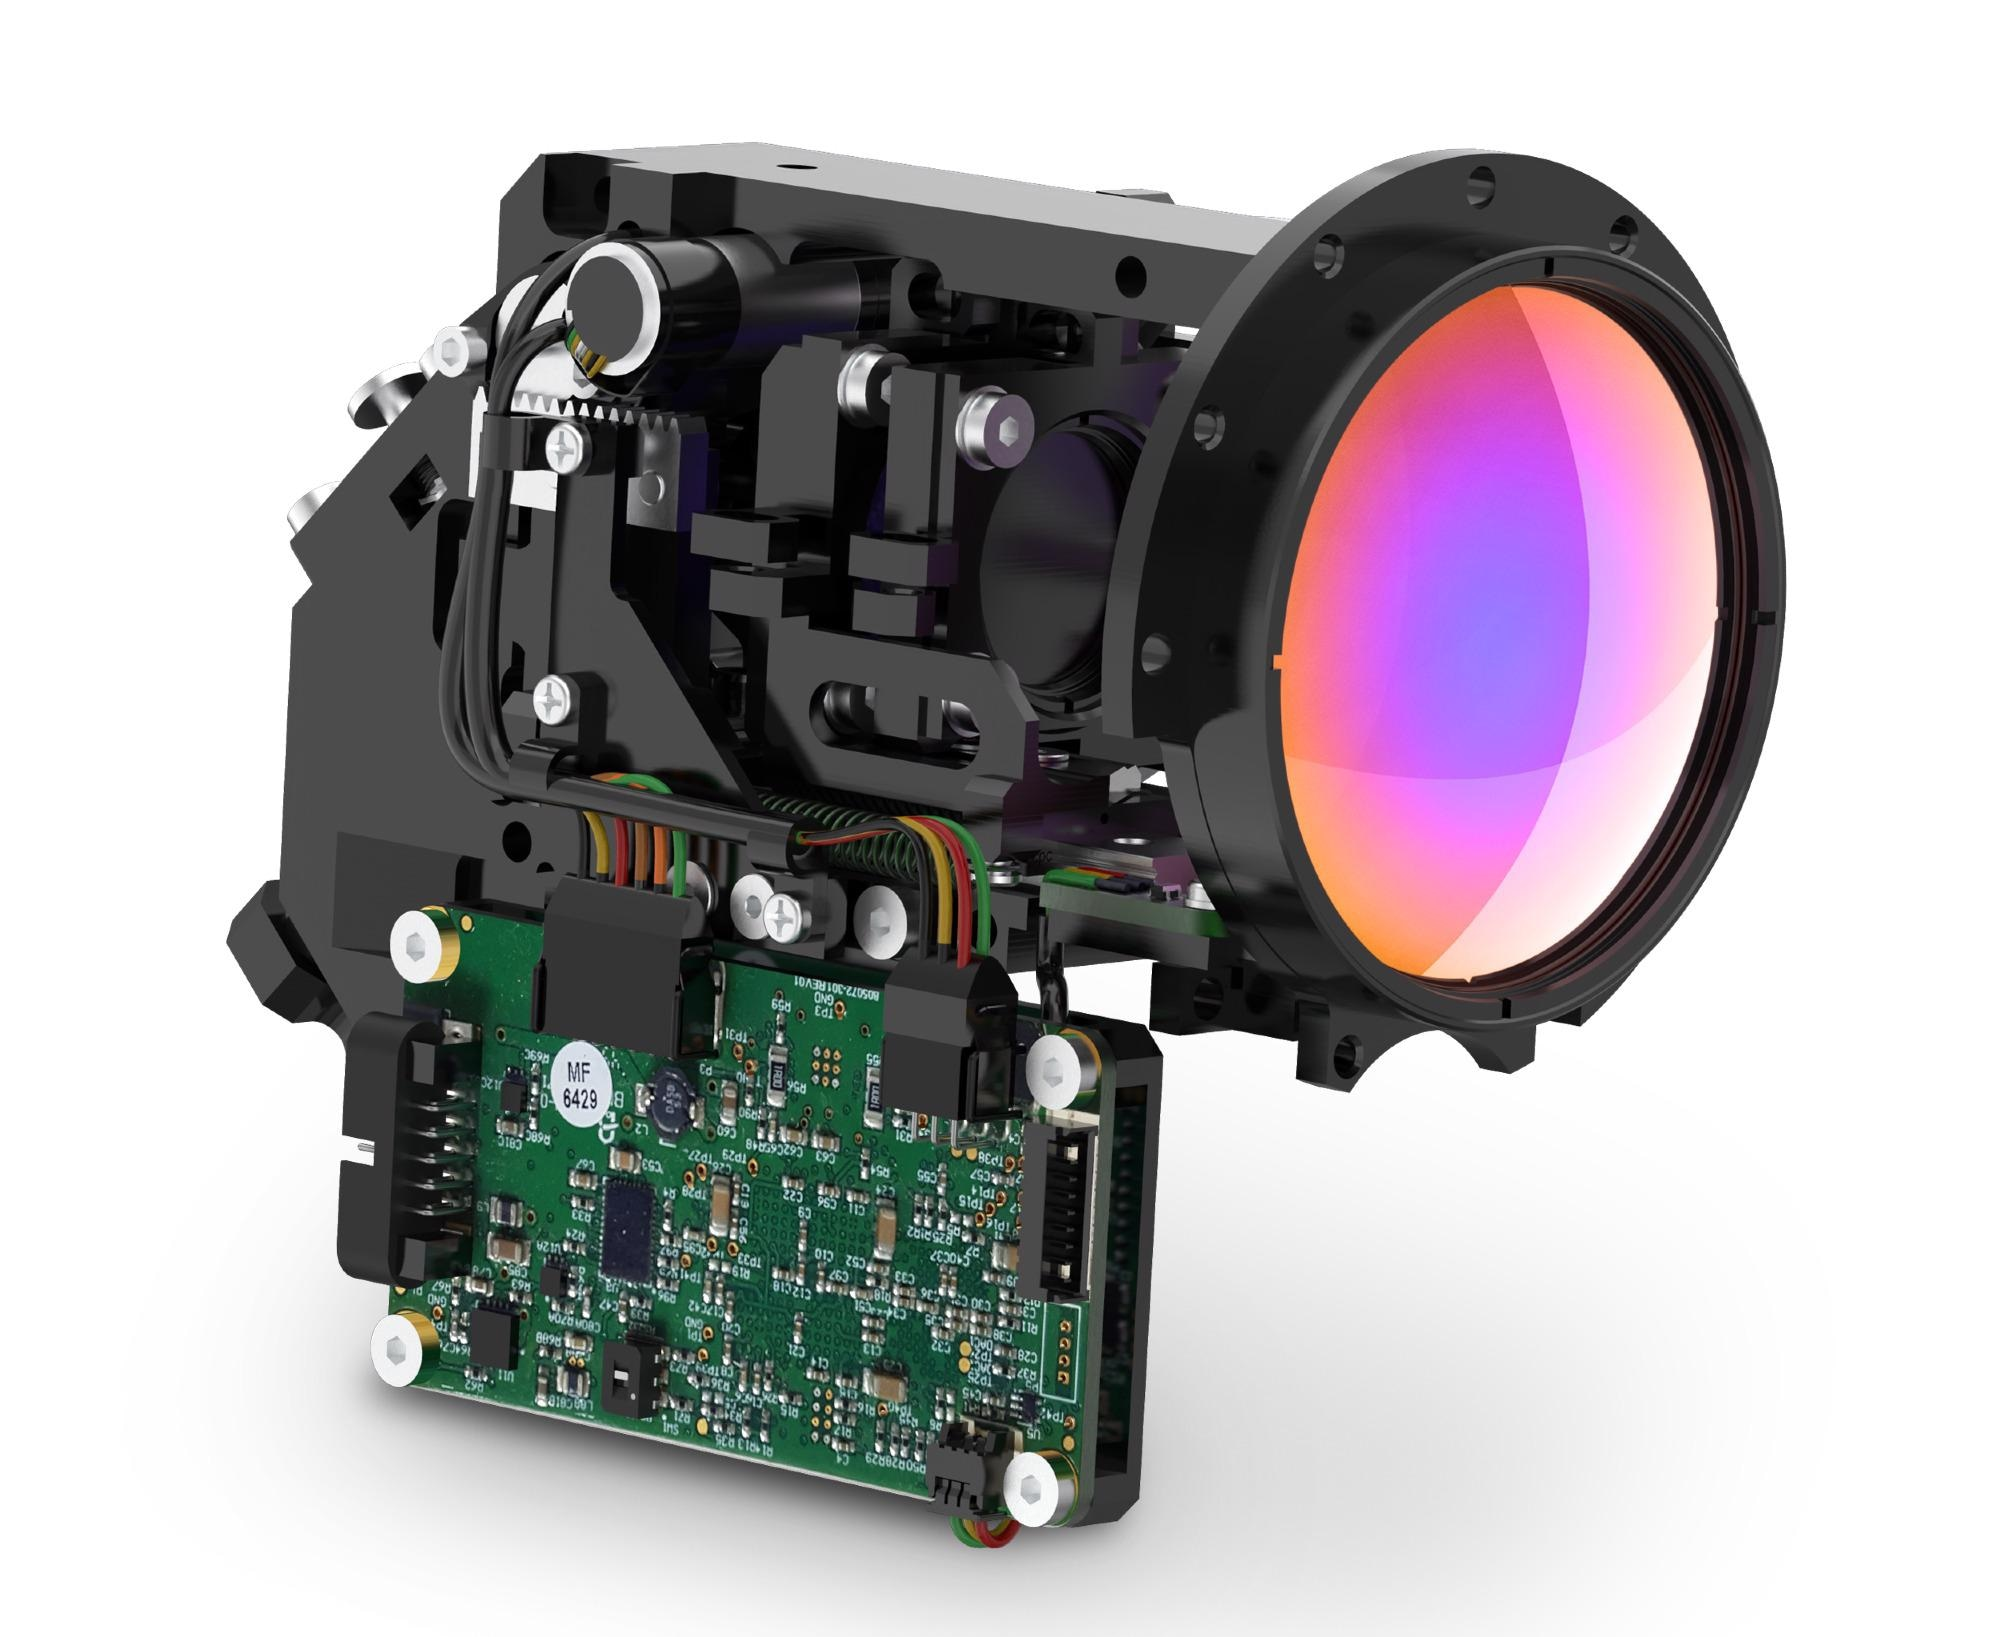 MKS Launches Ophir® MWIR Folded Zoom Lens with Disruptive Range and SWaP Capabilities for Drone and Small Gimbal Applications